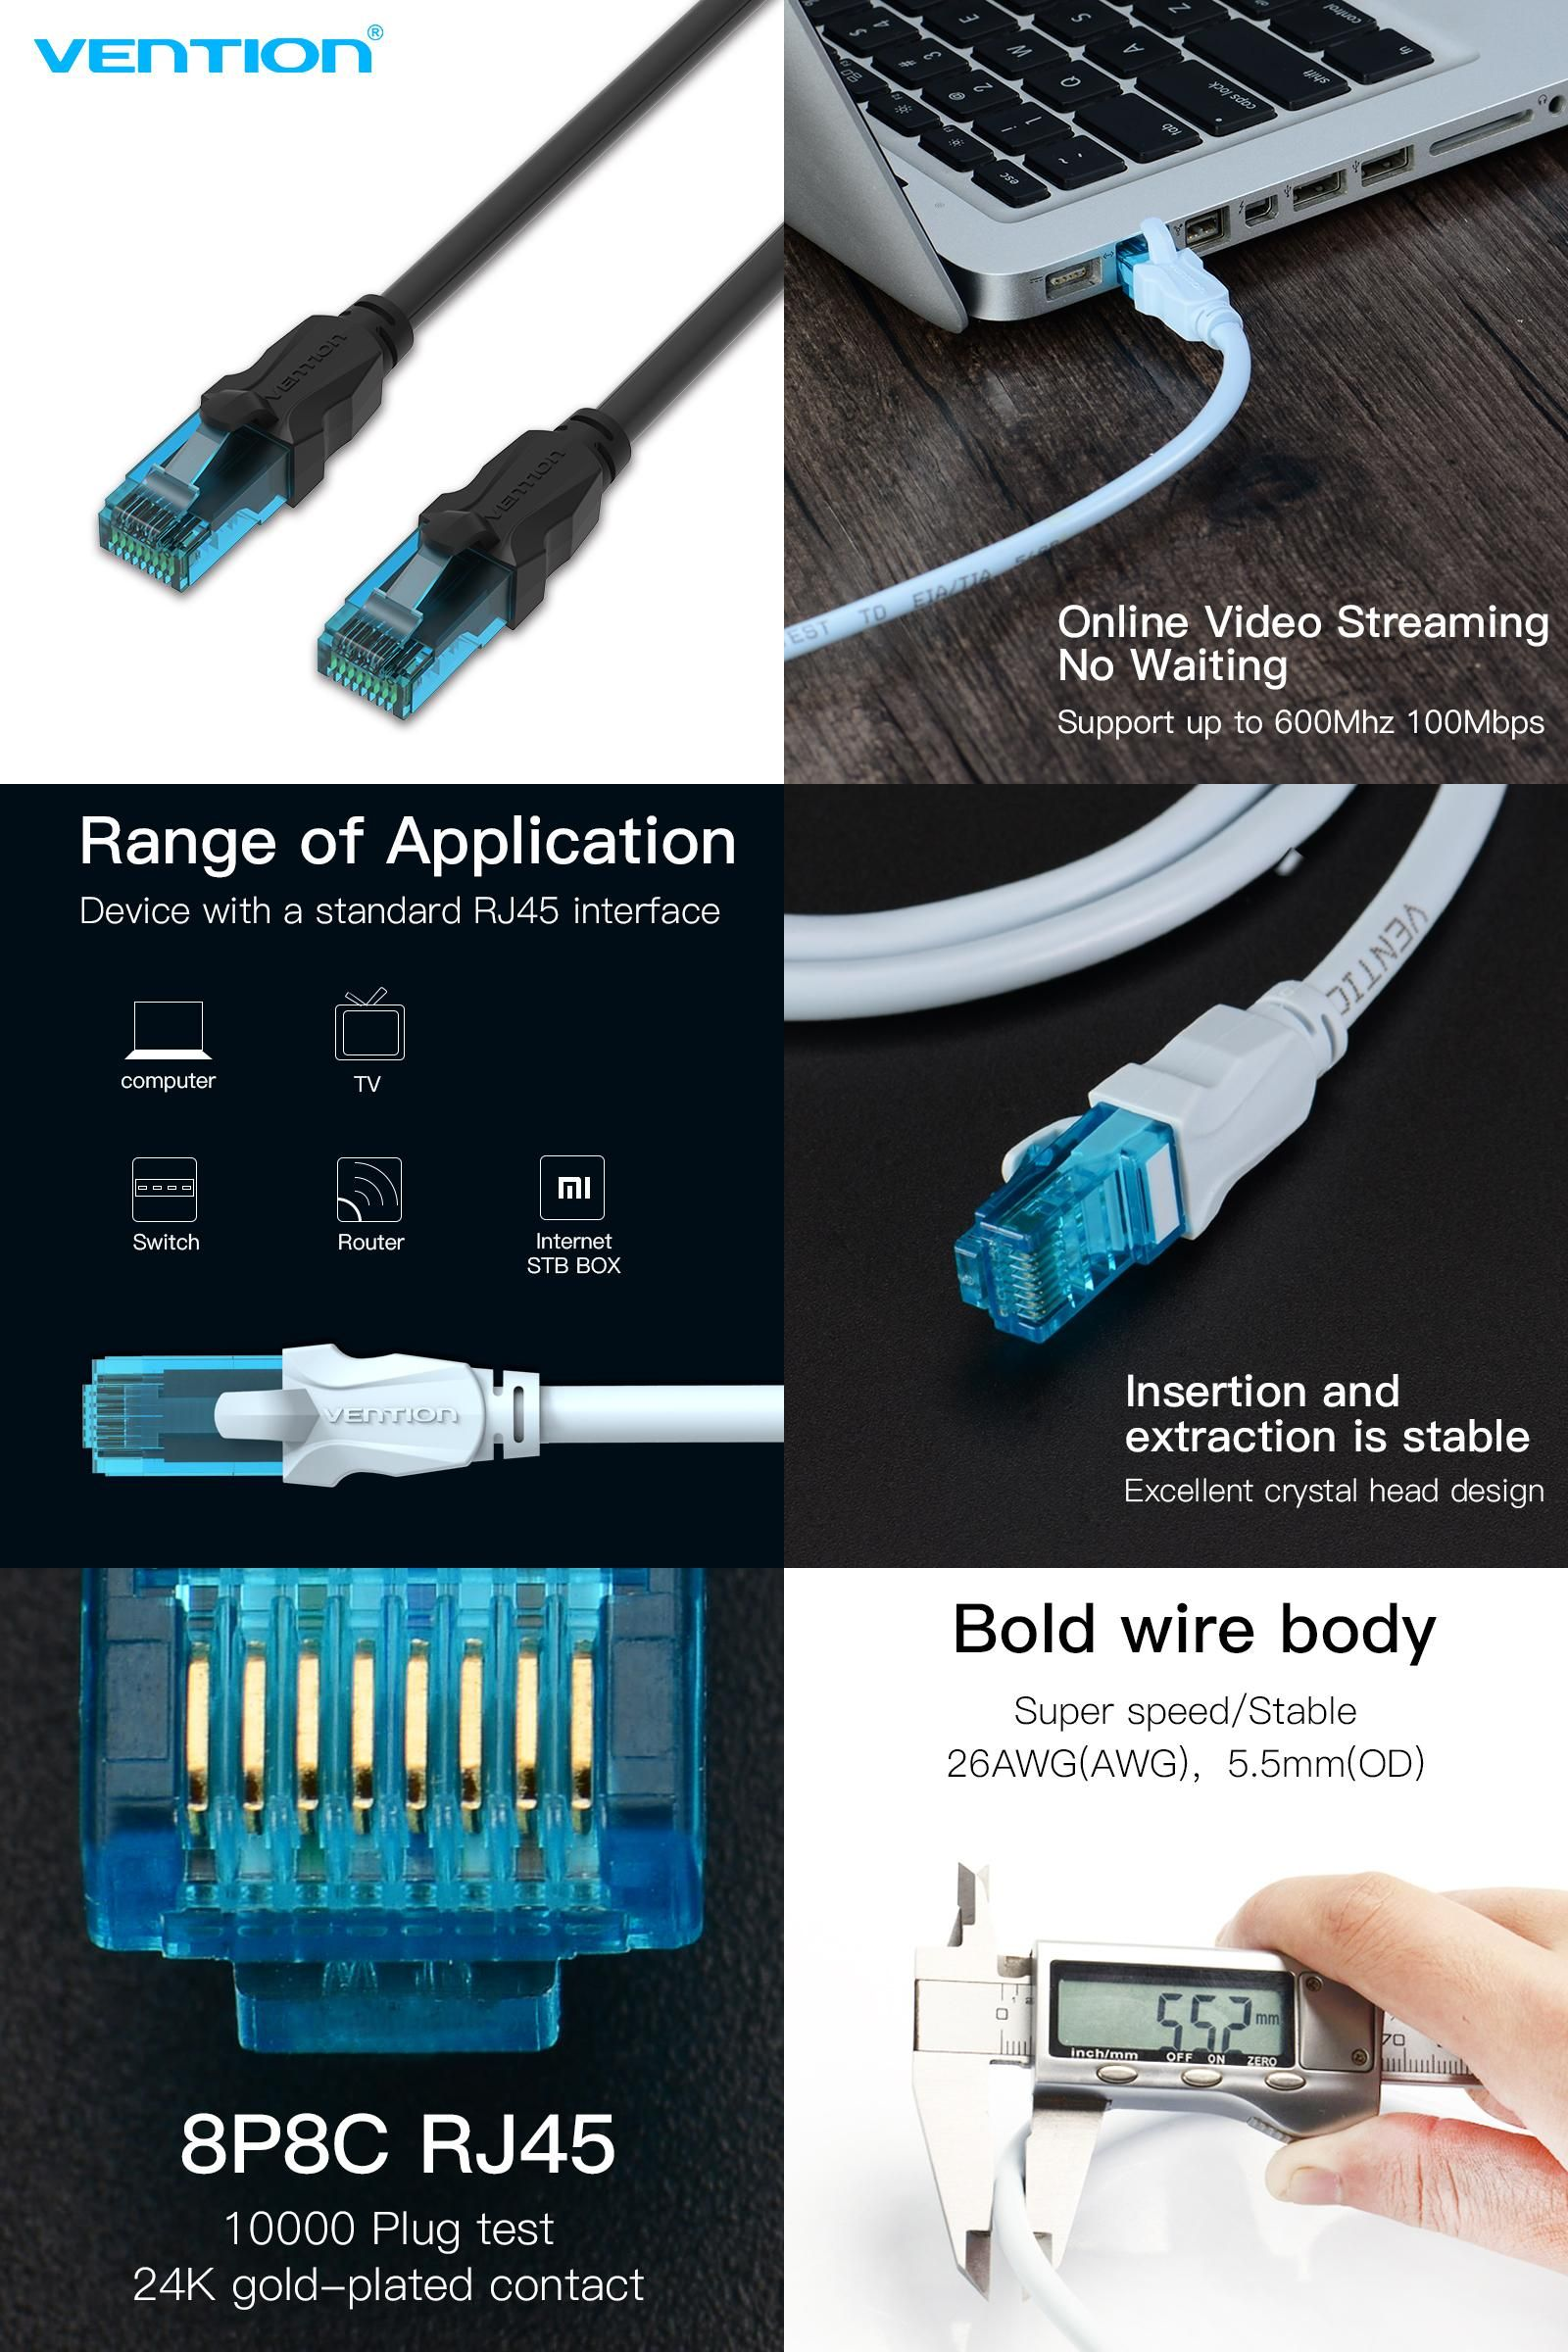 Visit To Buy Vention Ethernet Cable Cat5e Lan Cable Utp Cat 5 Rj45 Network Patch Cable 1m 2m 3m 5m For Computer Router Internet Router Online Video Streaming